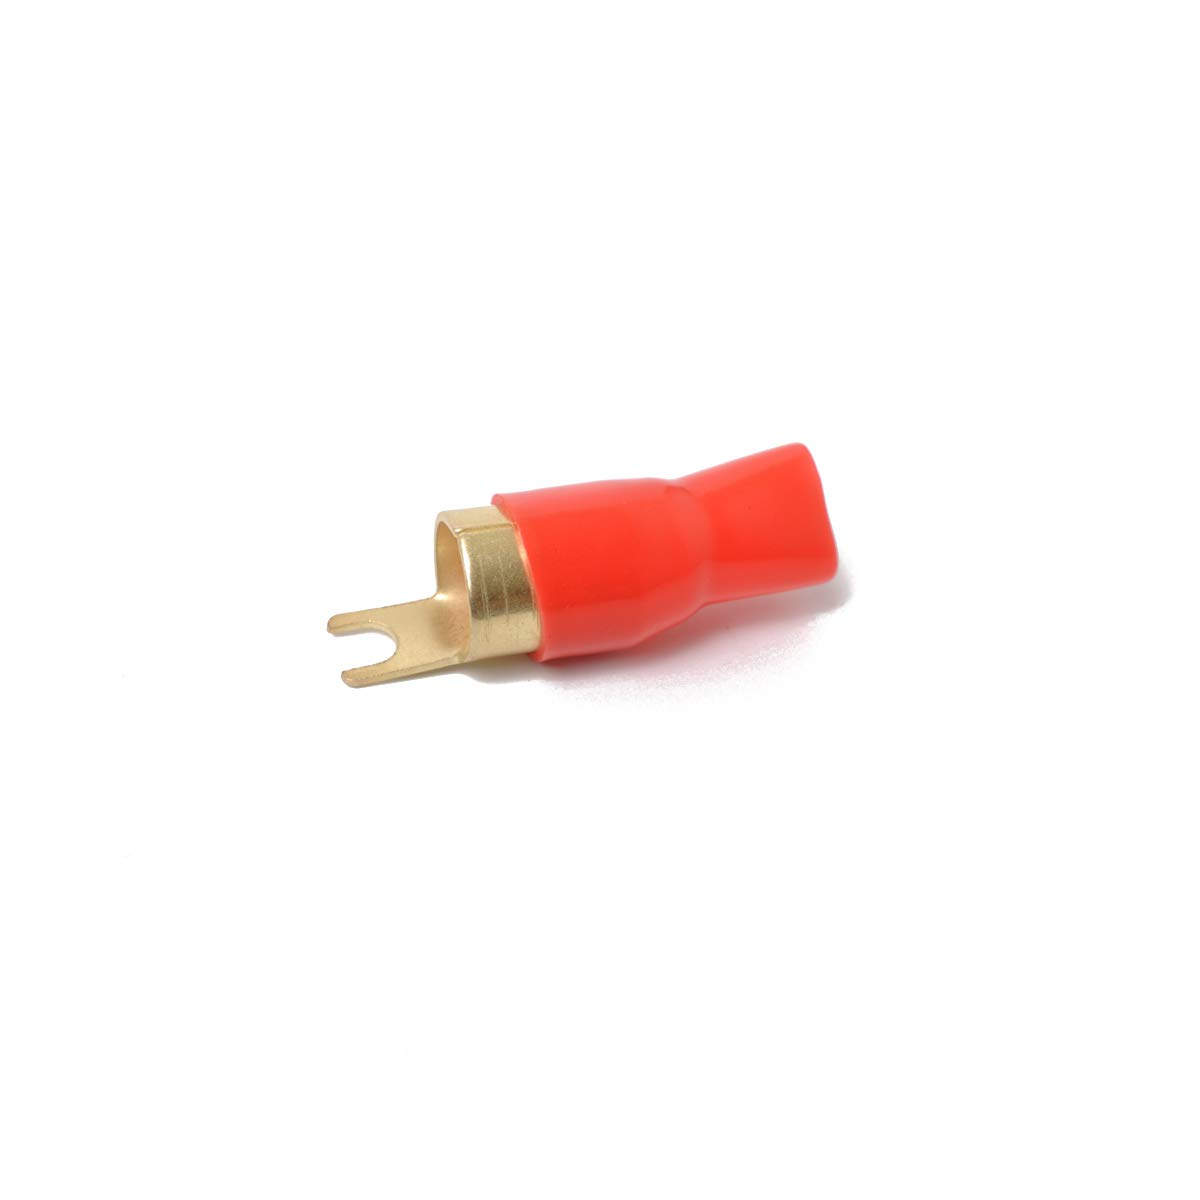 Red and Black 0GA 1 Pair Copper Gold Plated 0 Gauge Spade Terminal Crimp Connectors Adapters Crimp Barrier Spades for Speaker Wire Cable Terminal Plug